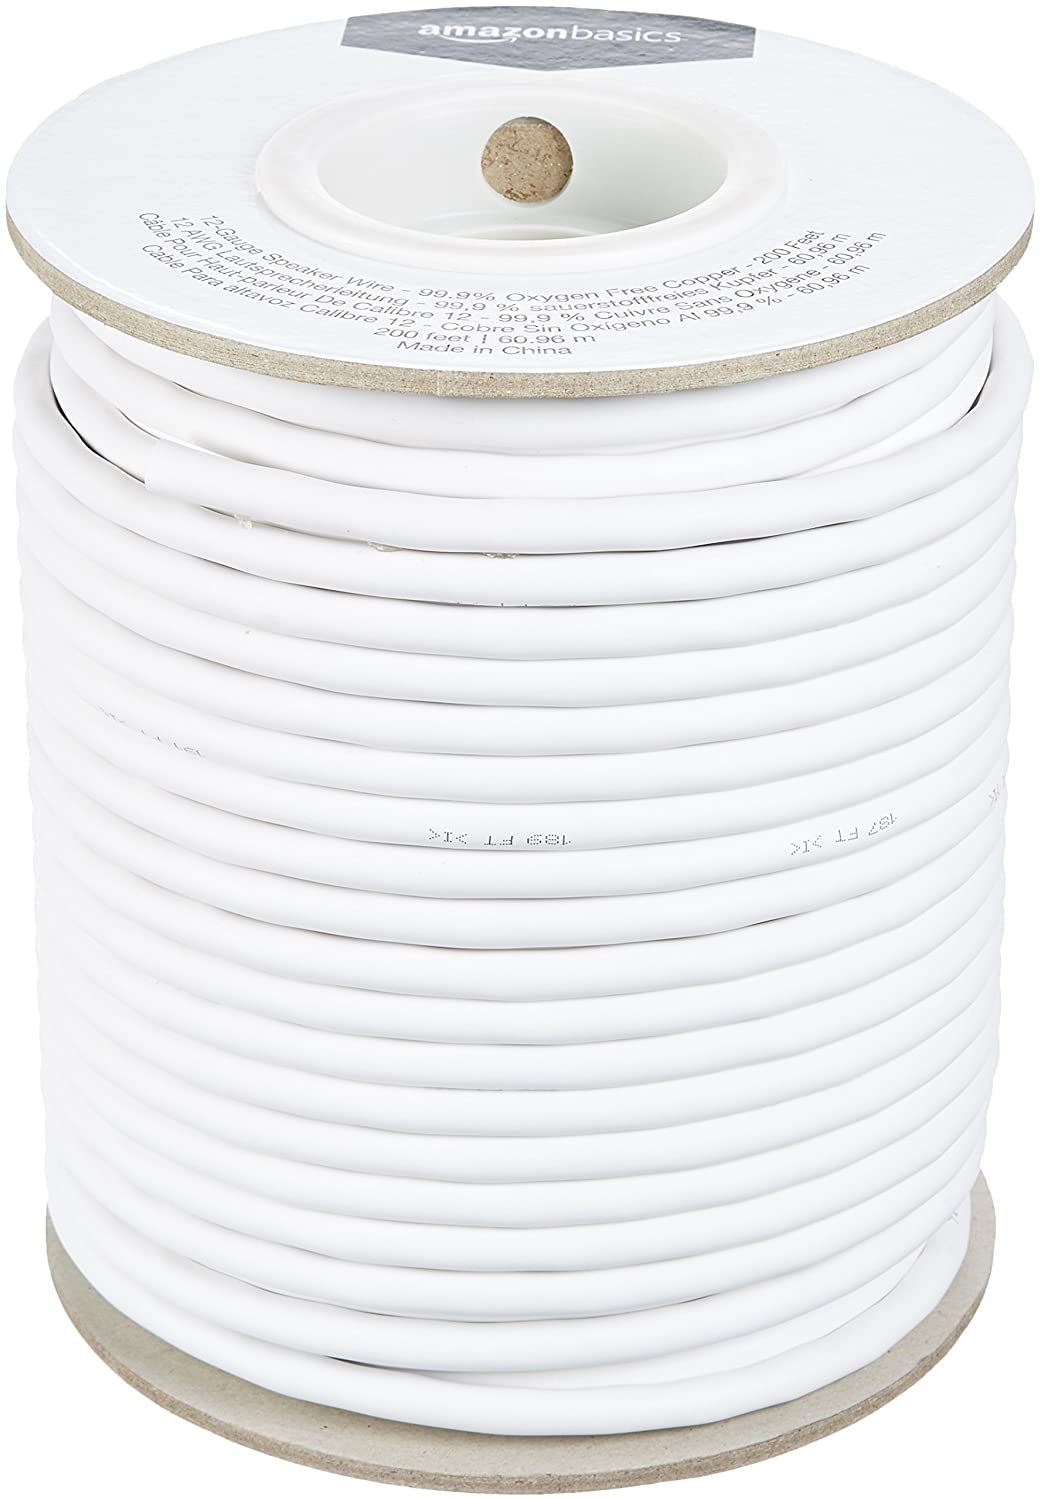 AmazonBasics 12-Gauge Speaker Wire - 99.9% Oxygen Free Copper, 200-Foot